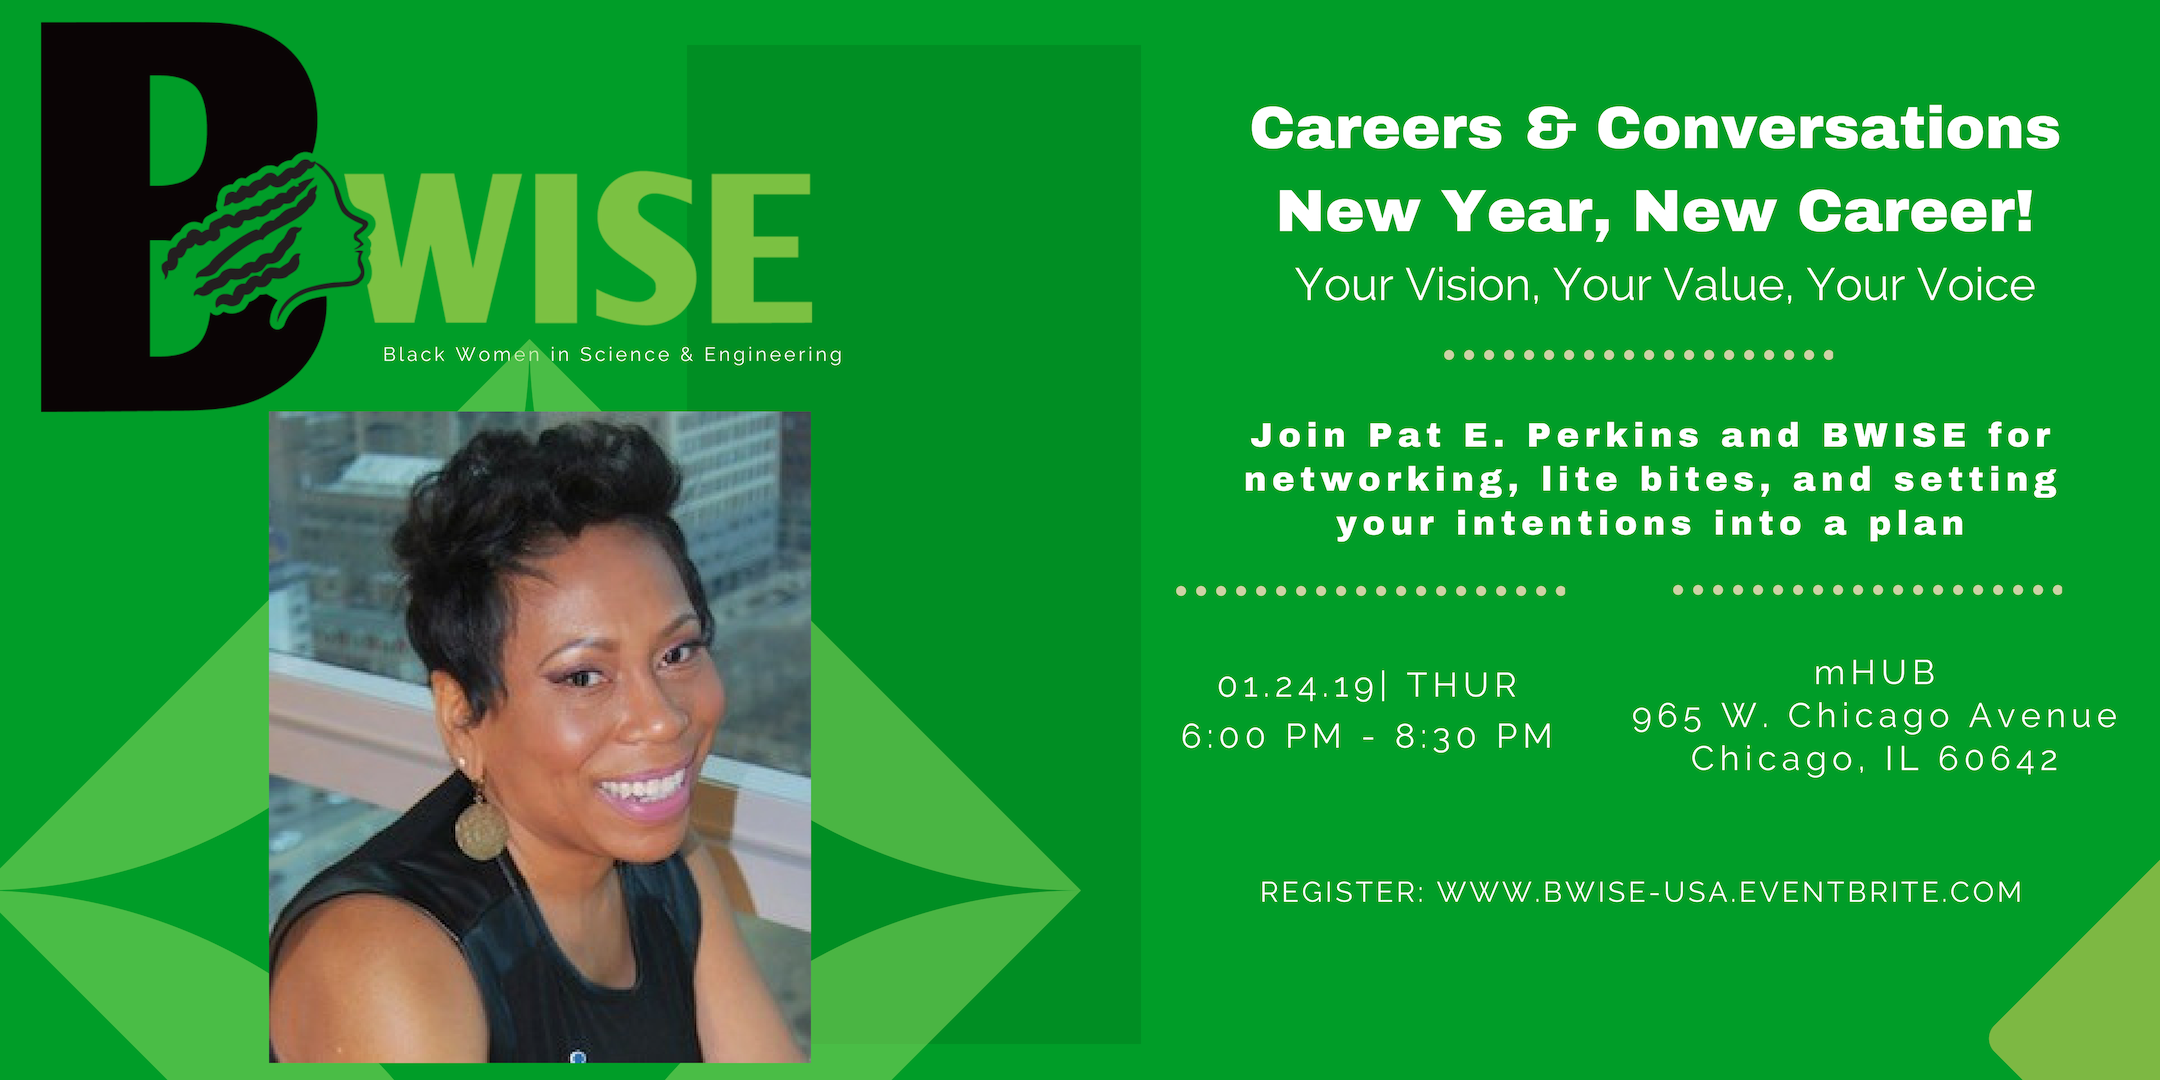 BWISE Presents: Careers and Conversations: New Year, New Career!